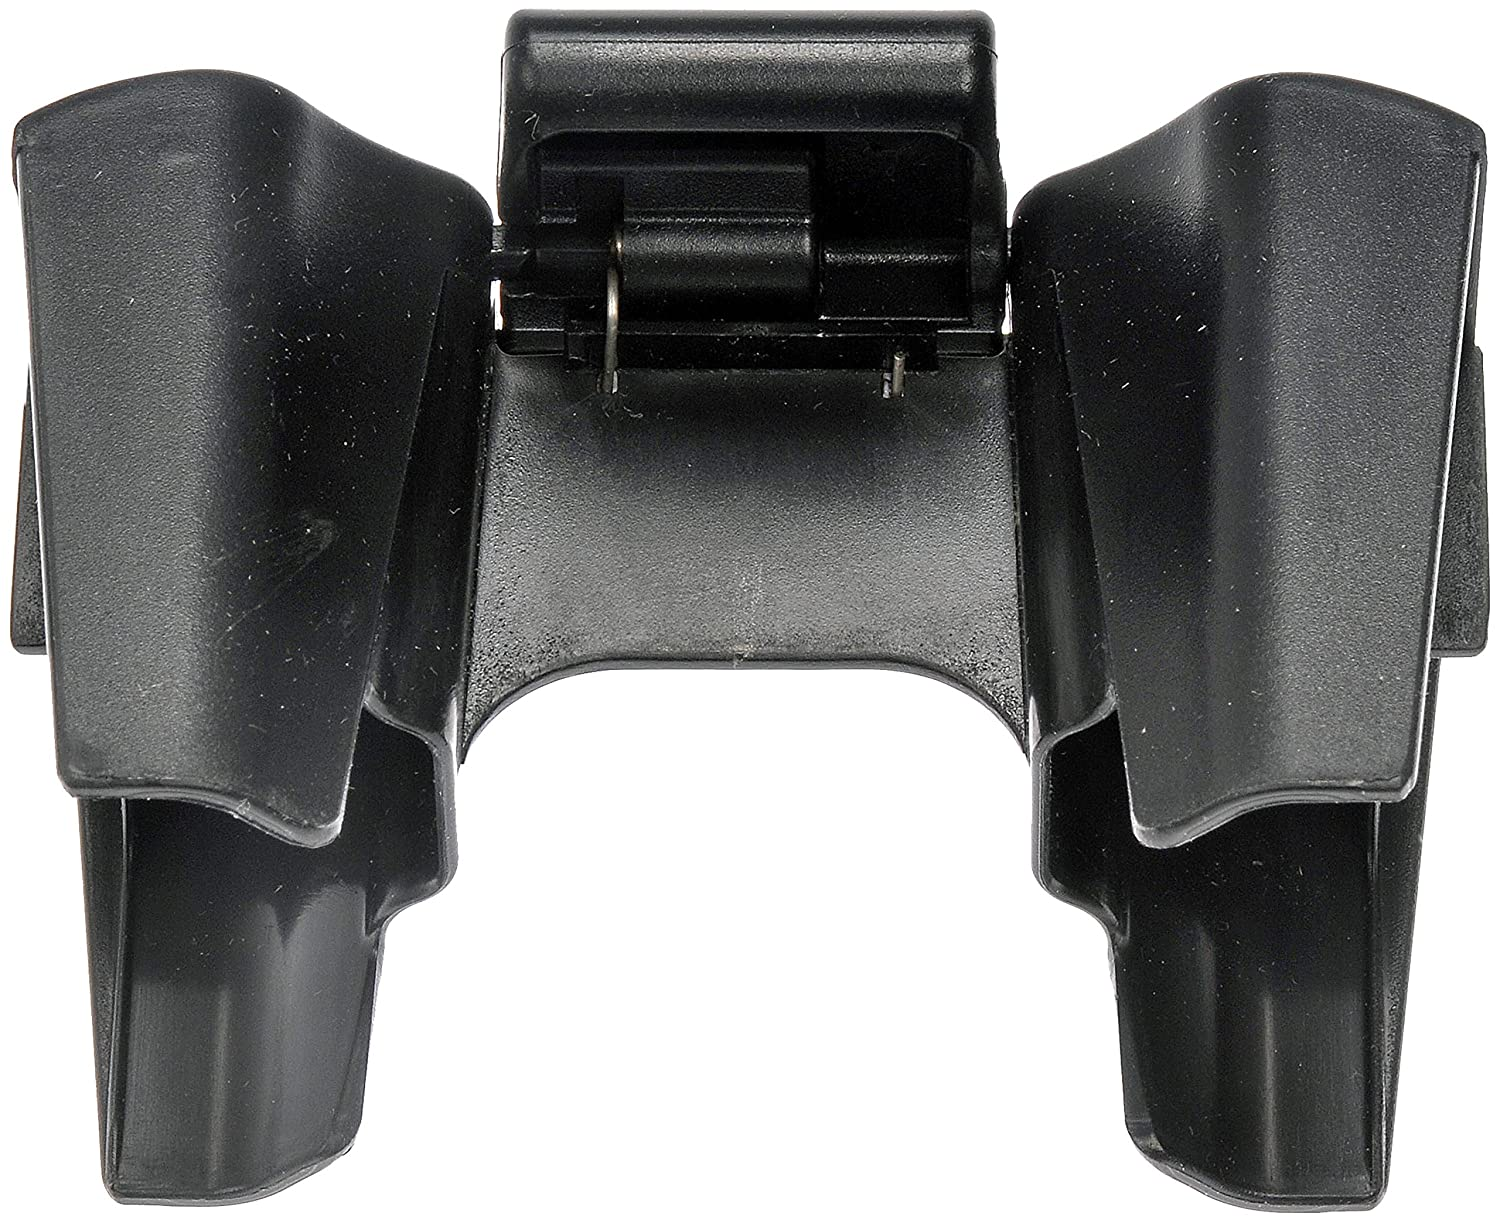 Dorman 41021 Cup Holder Insert Replacement